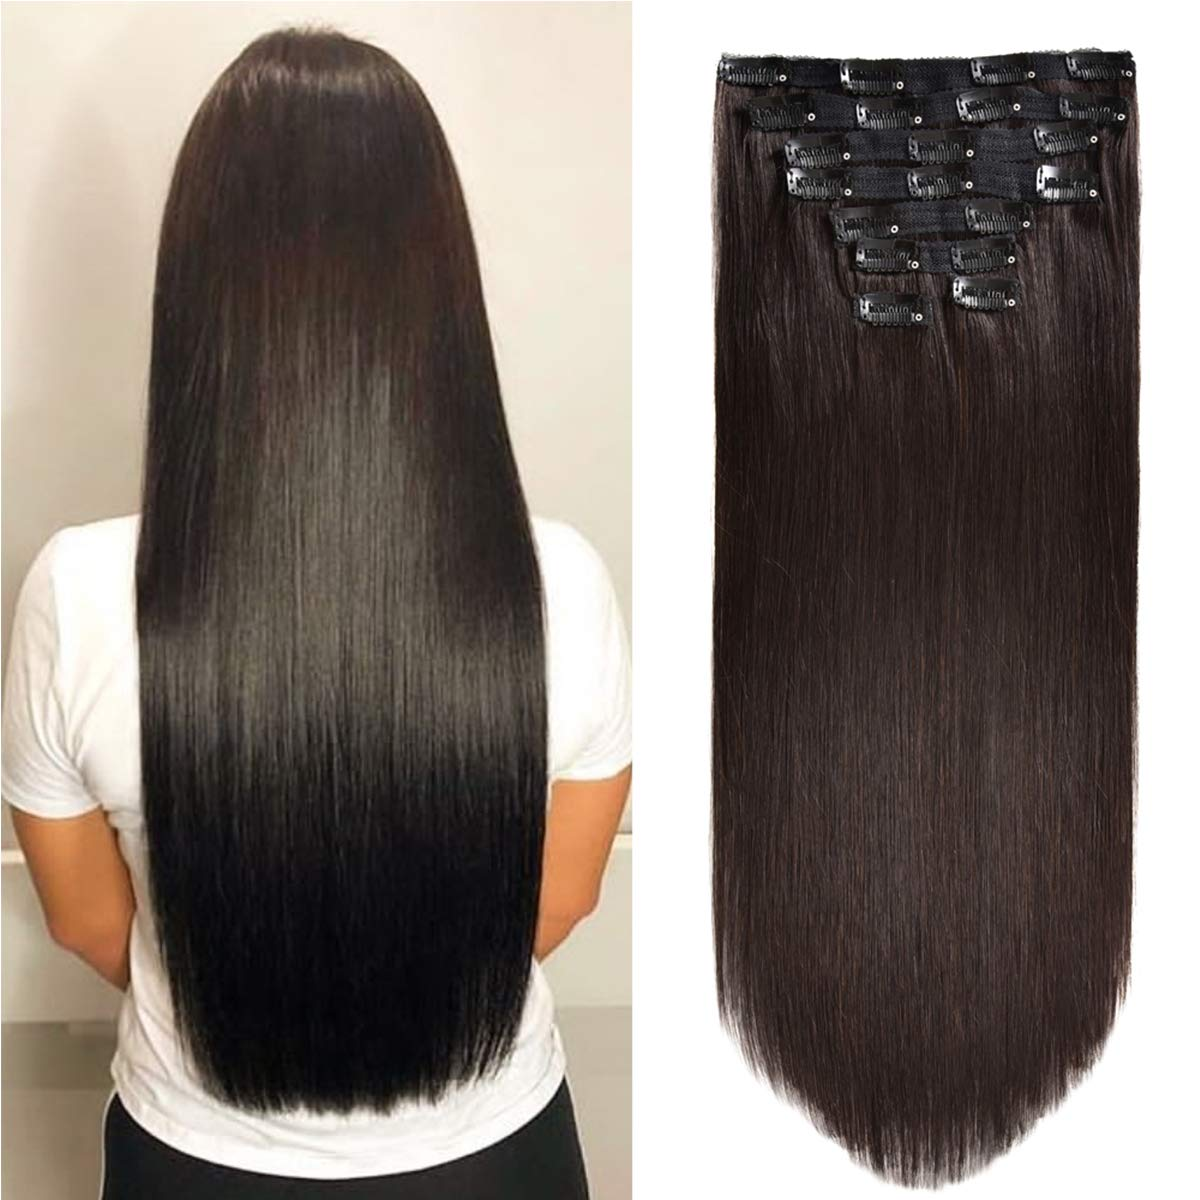 Hair Extensions Opening Very popular large release sale Clip In Human Lace Remy Hu Double Weft edge